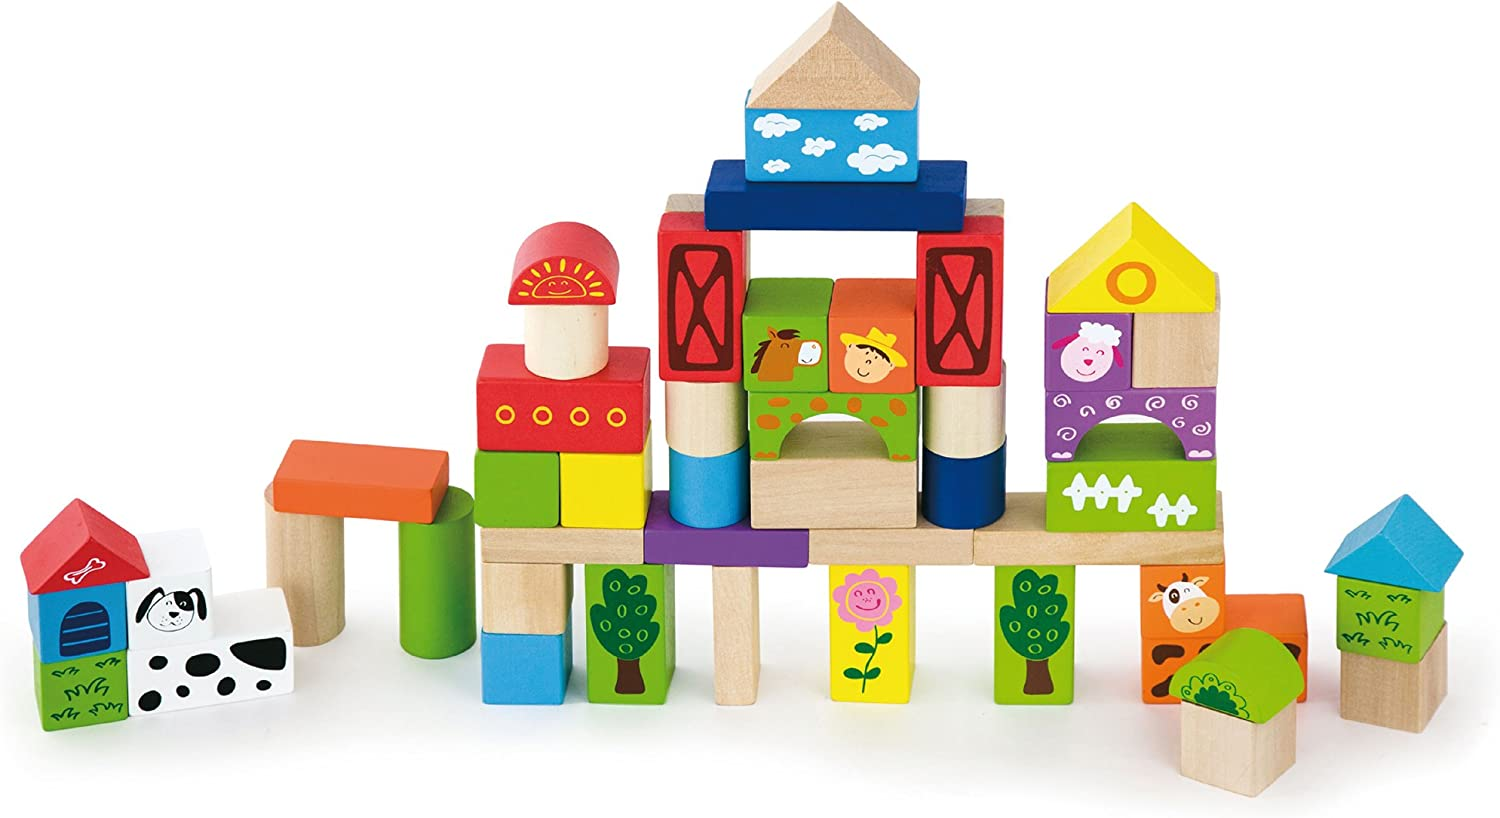 Viga Wooden Building Blocks 50 Piece Set with Farm Theme  50285 by Viga